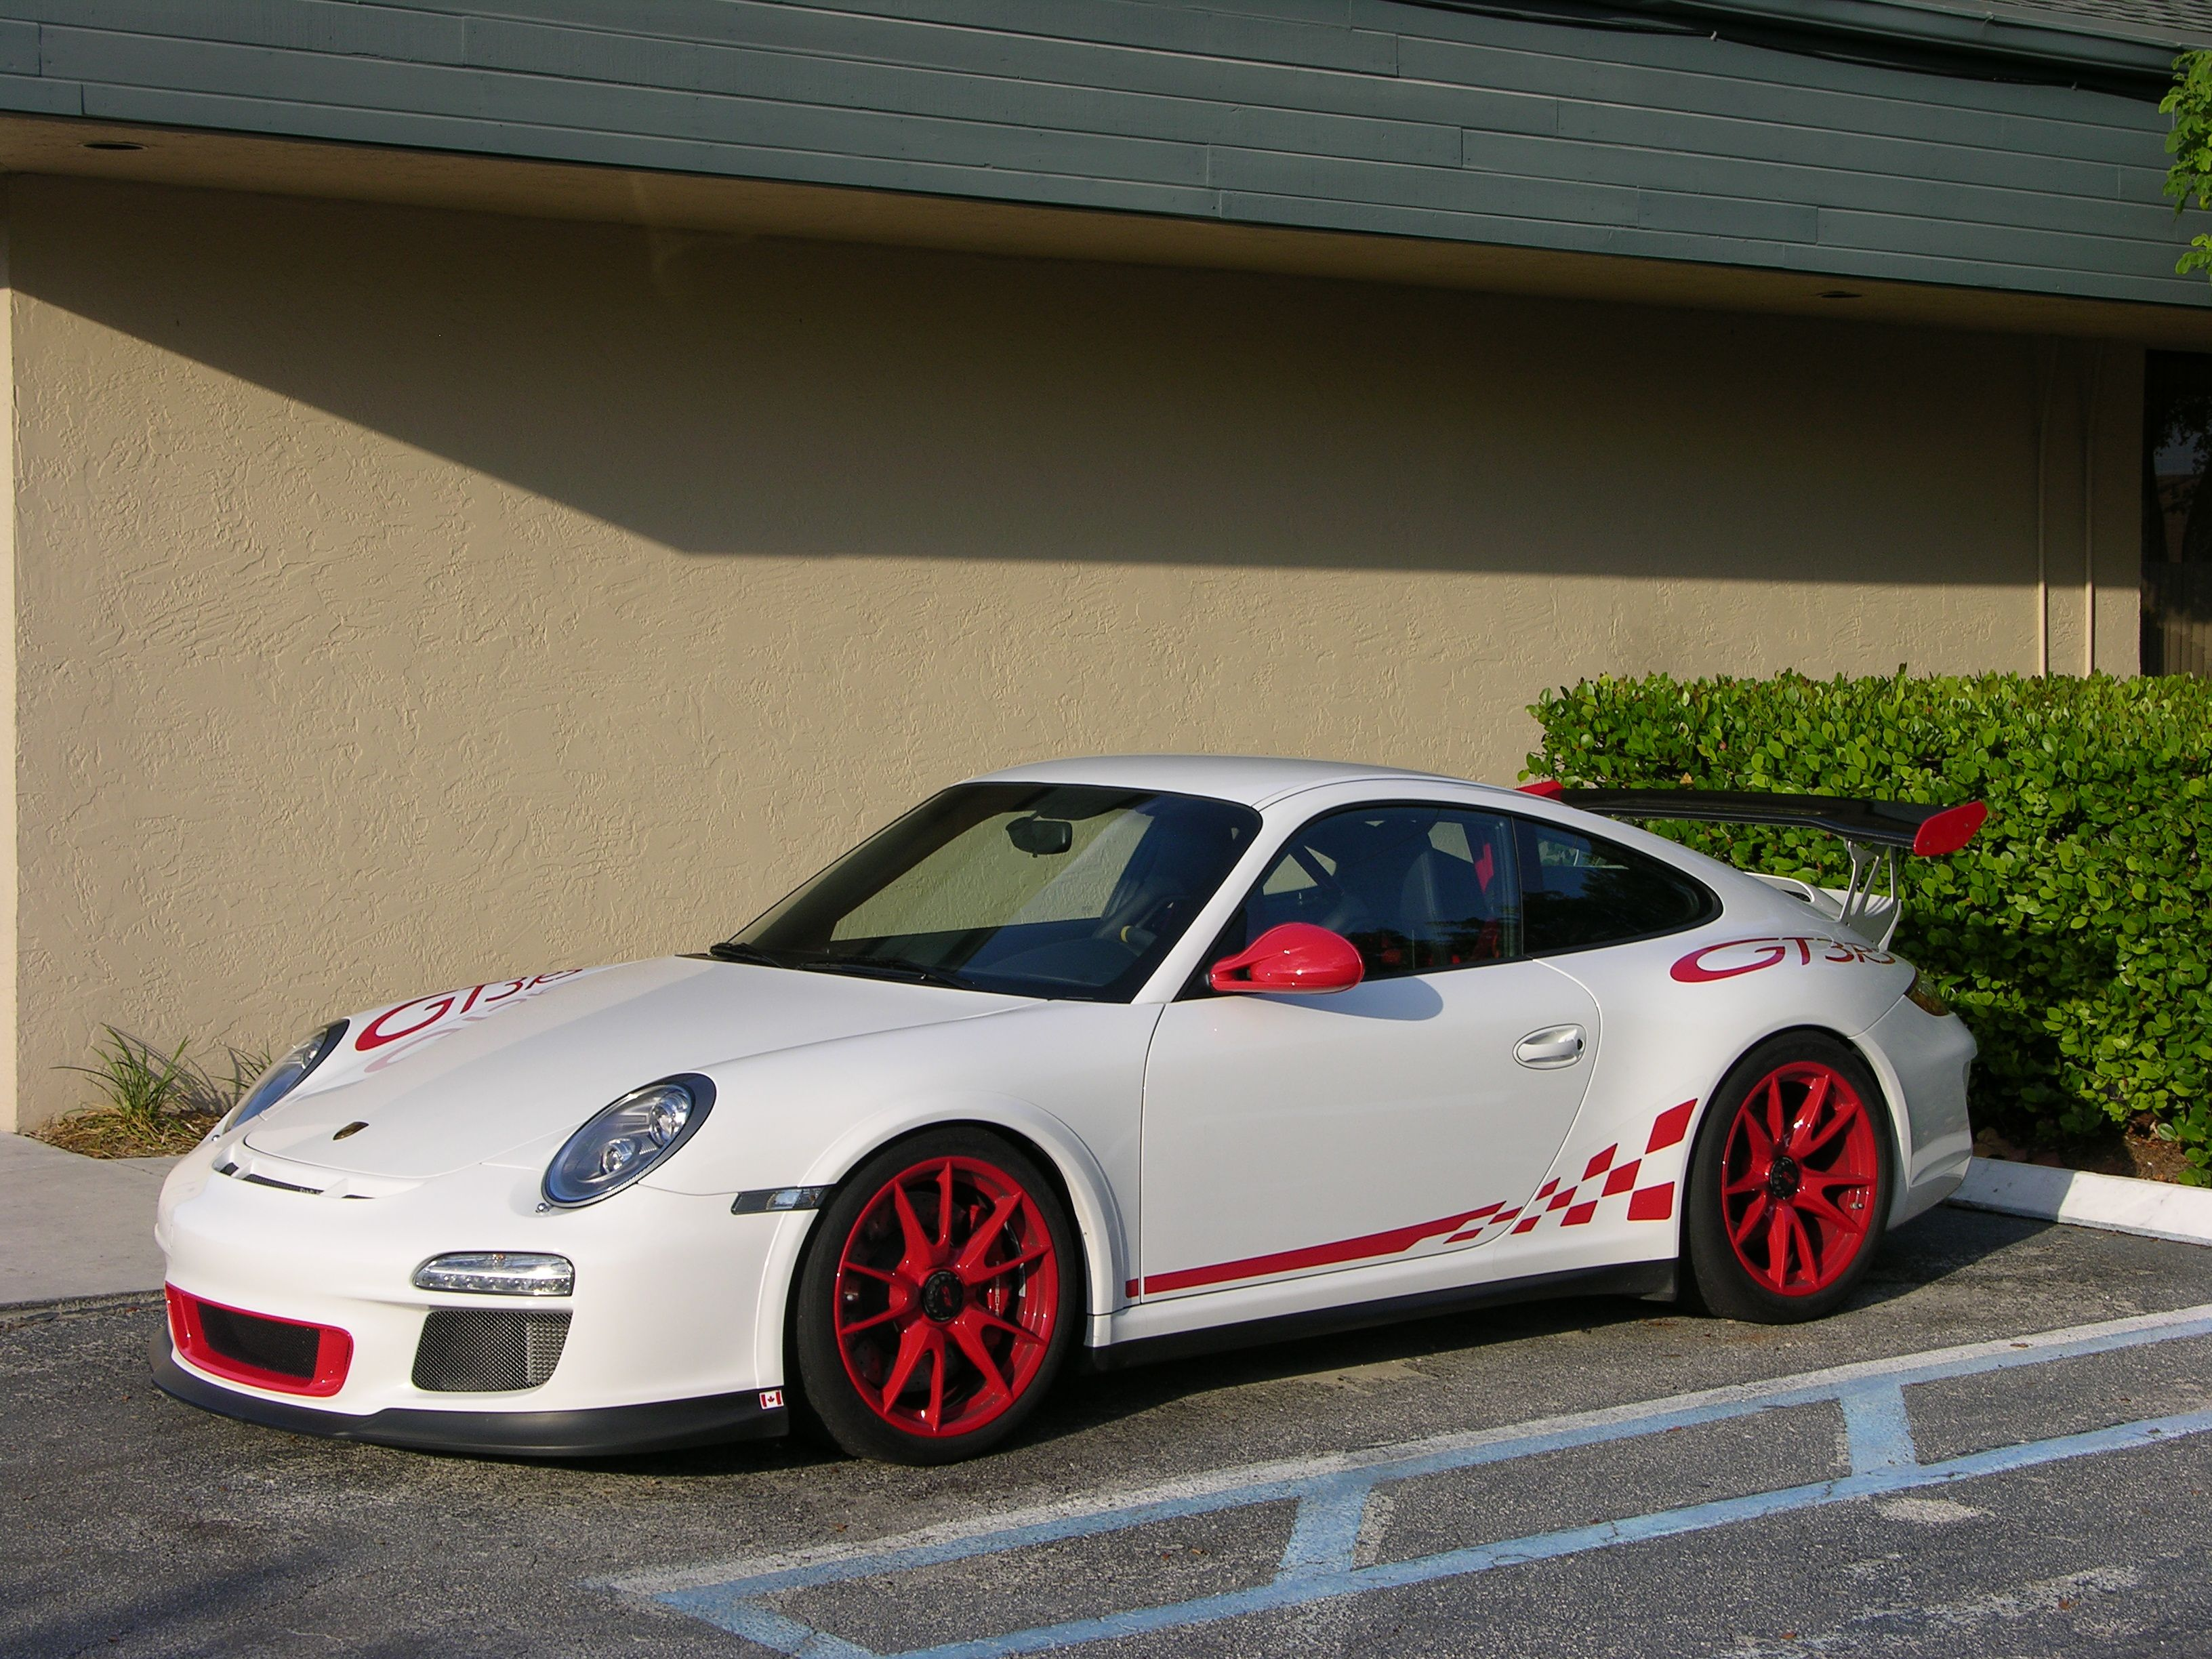 Porsche Gt3 Rs In Luxury Wrap White With Red Accents Looks Like A Christmas Present Luxury Wraps Porsche Gt3 Car Wrap